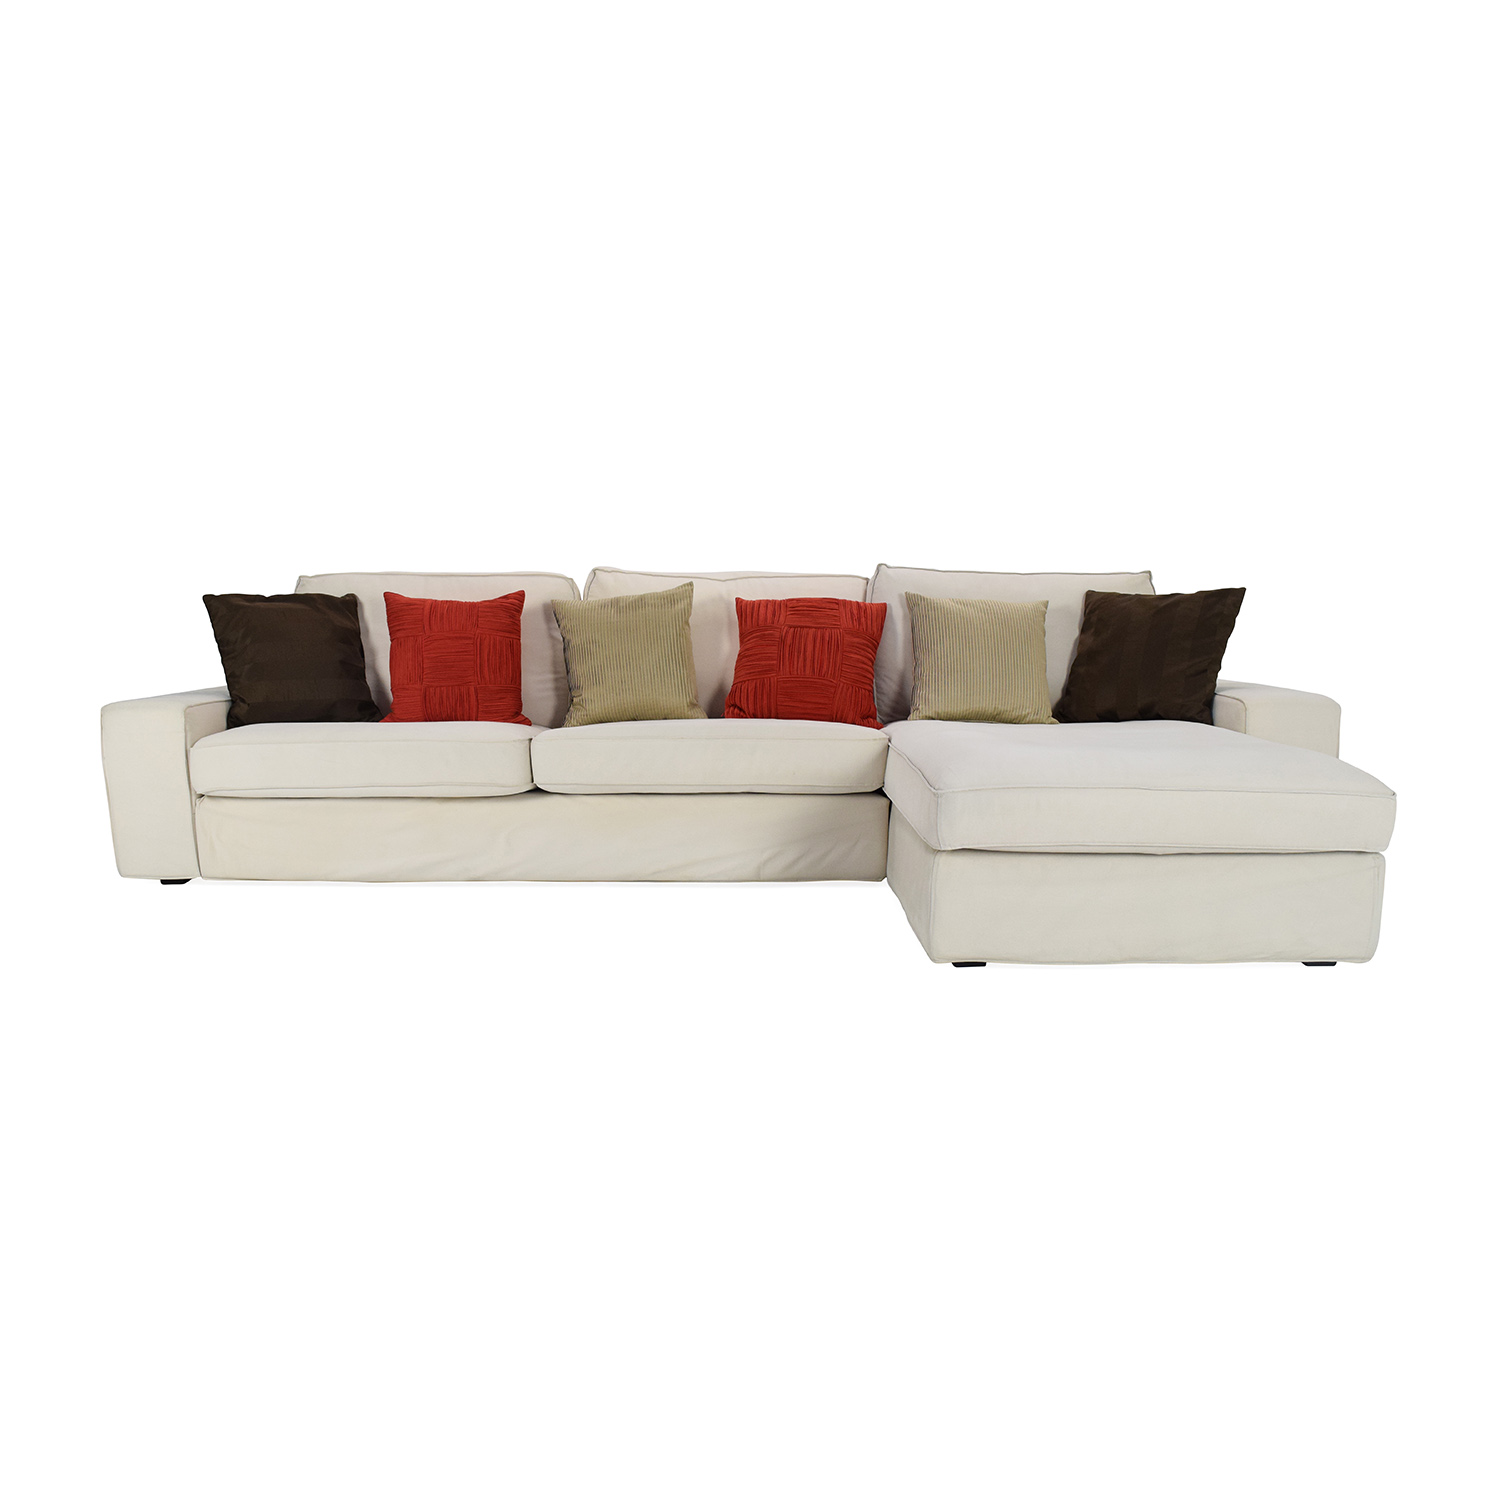 Chaise ikea epic ikea sleeper sofa with chaise for your for Chaise fauteuil ikea